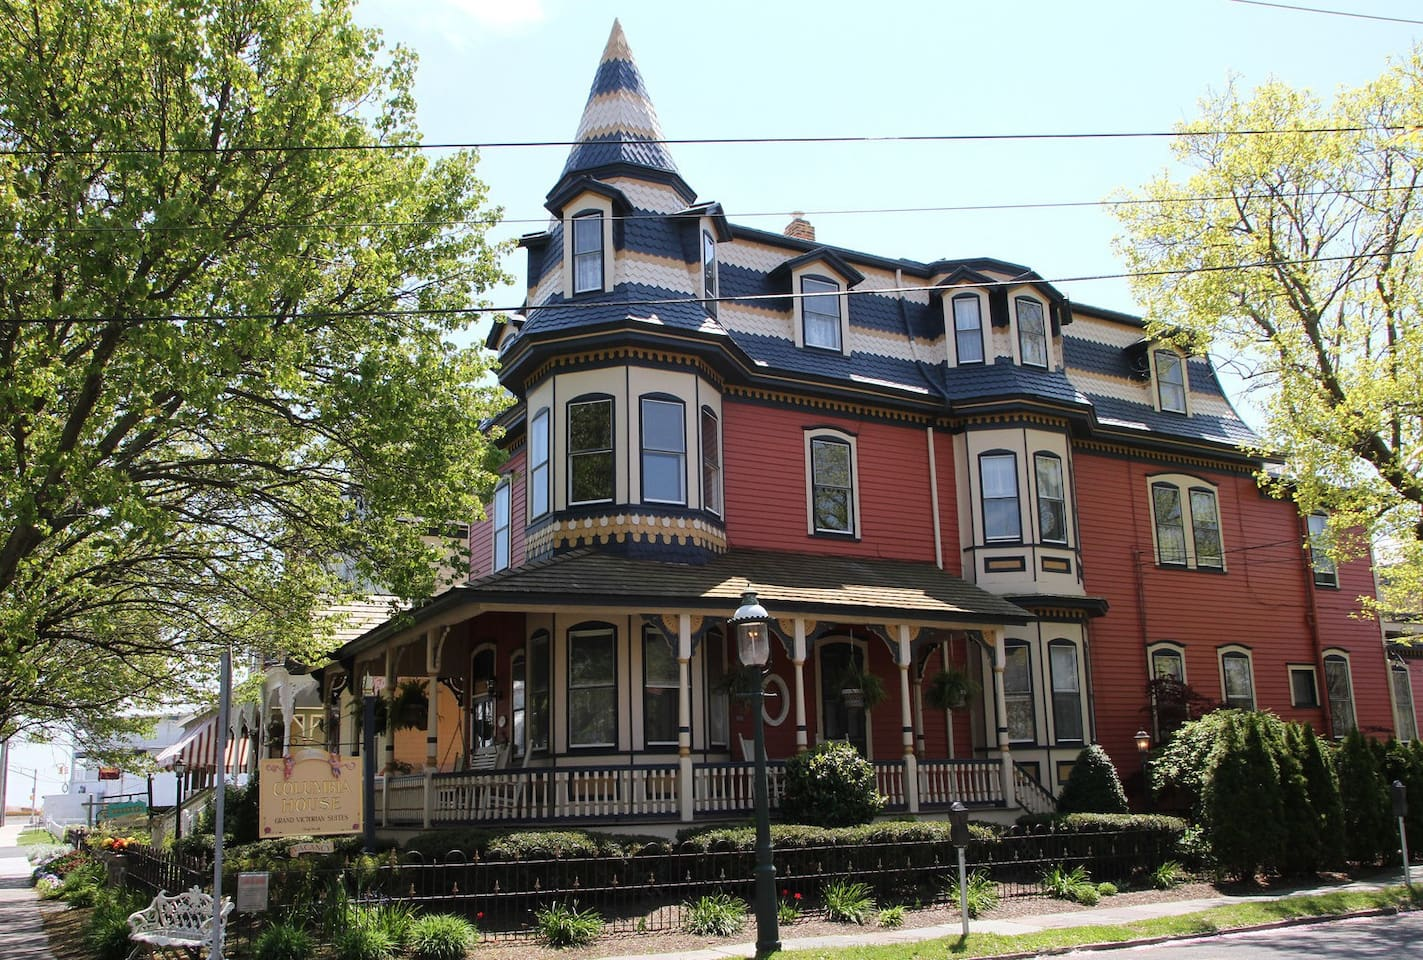 1886 Victorian 'Painted Lady'. Superior location...walk to everything! Dedicated/labeled parking behind house...easy to come and go.